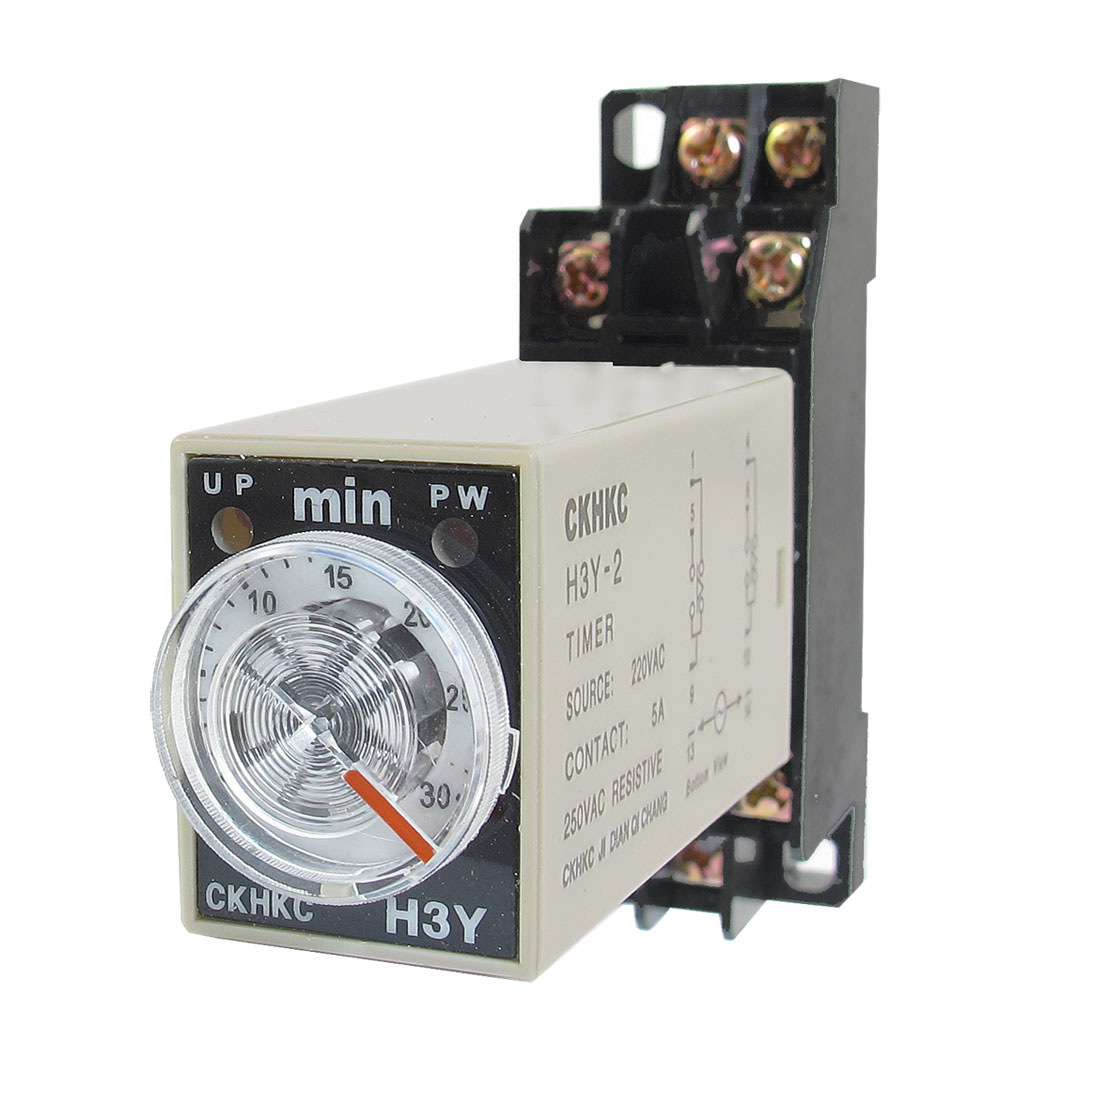 H3Y-2 220VAC DPDT 30 Minutes 30Min 8P Terminals Delay Timer Time Relay w Base